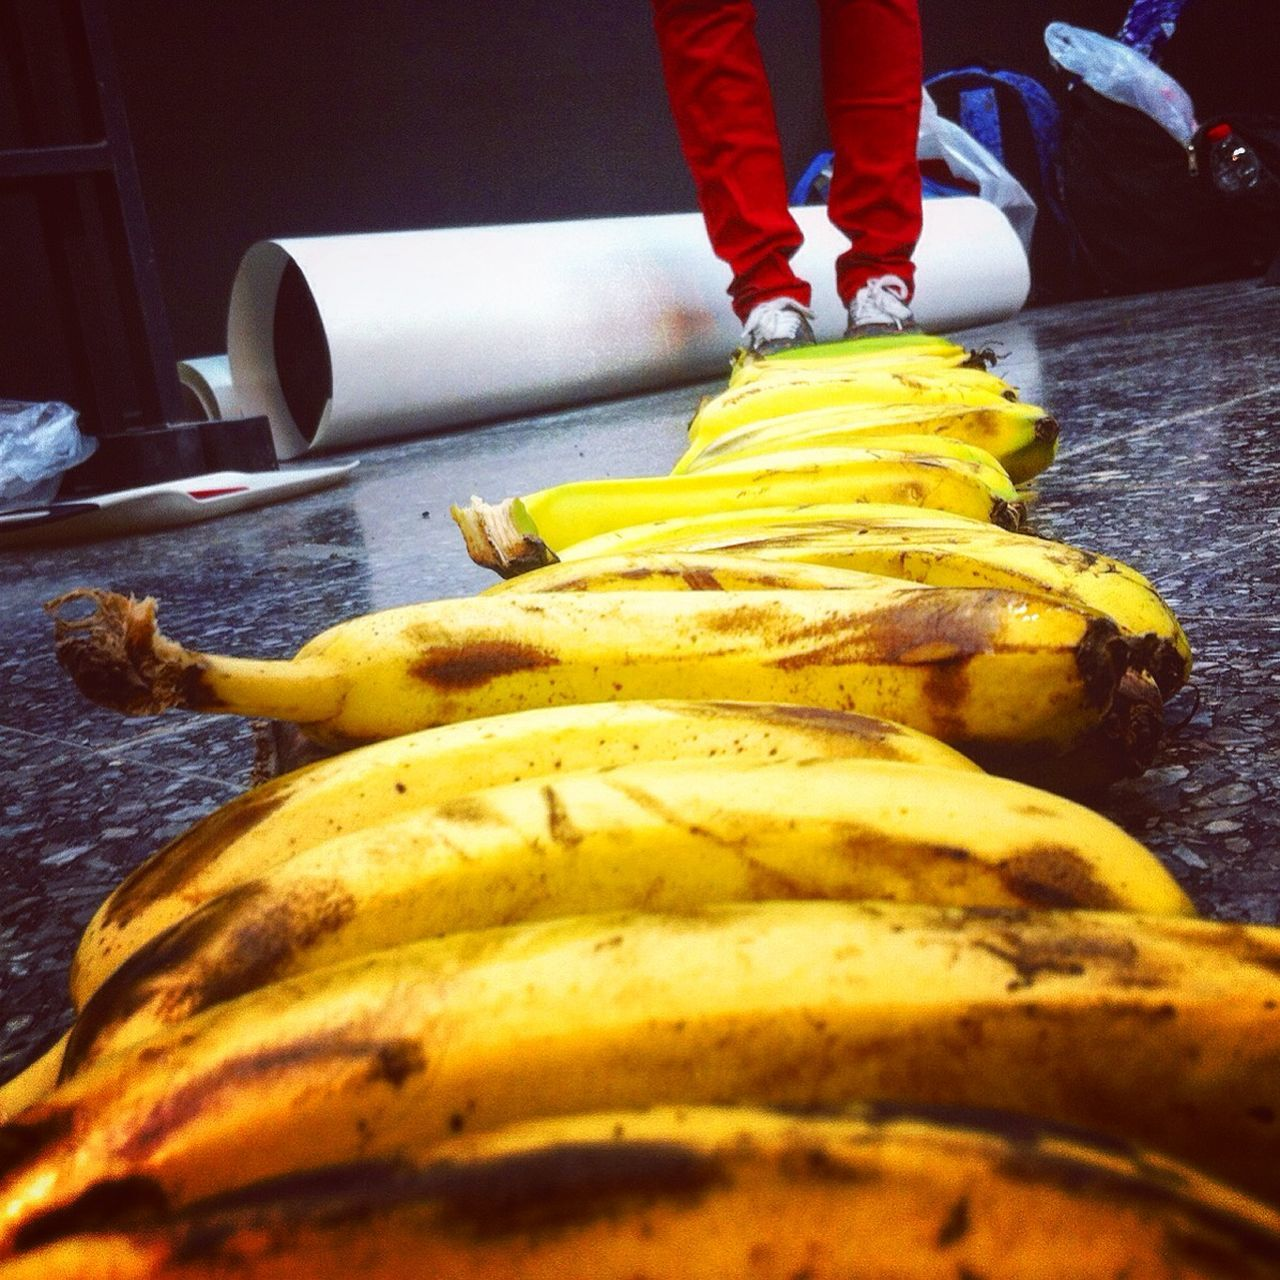 Making some Creative Stopmotion Animation with Banana for School Project .